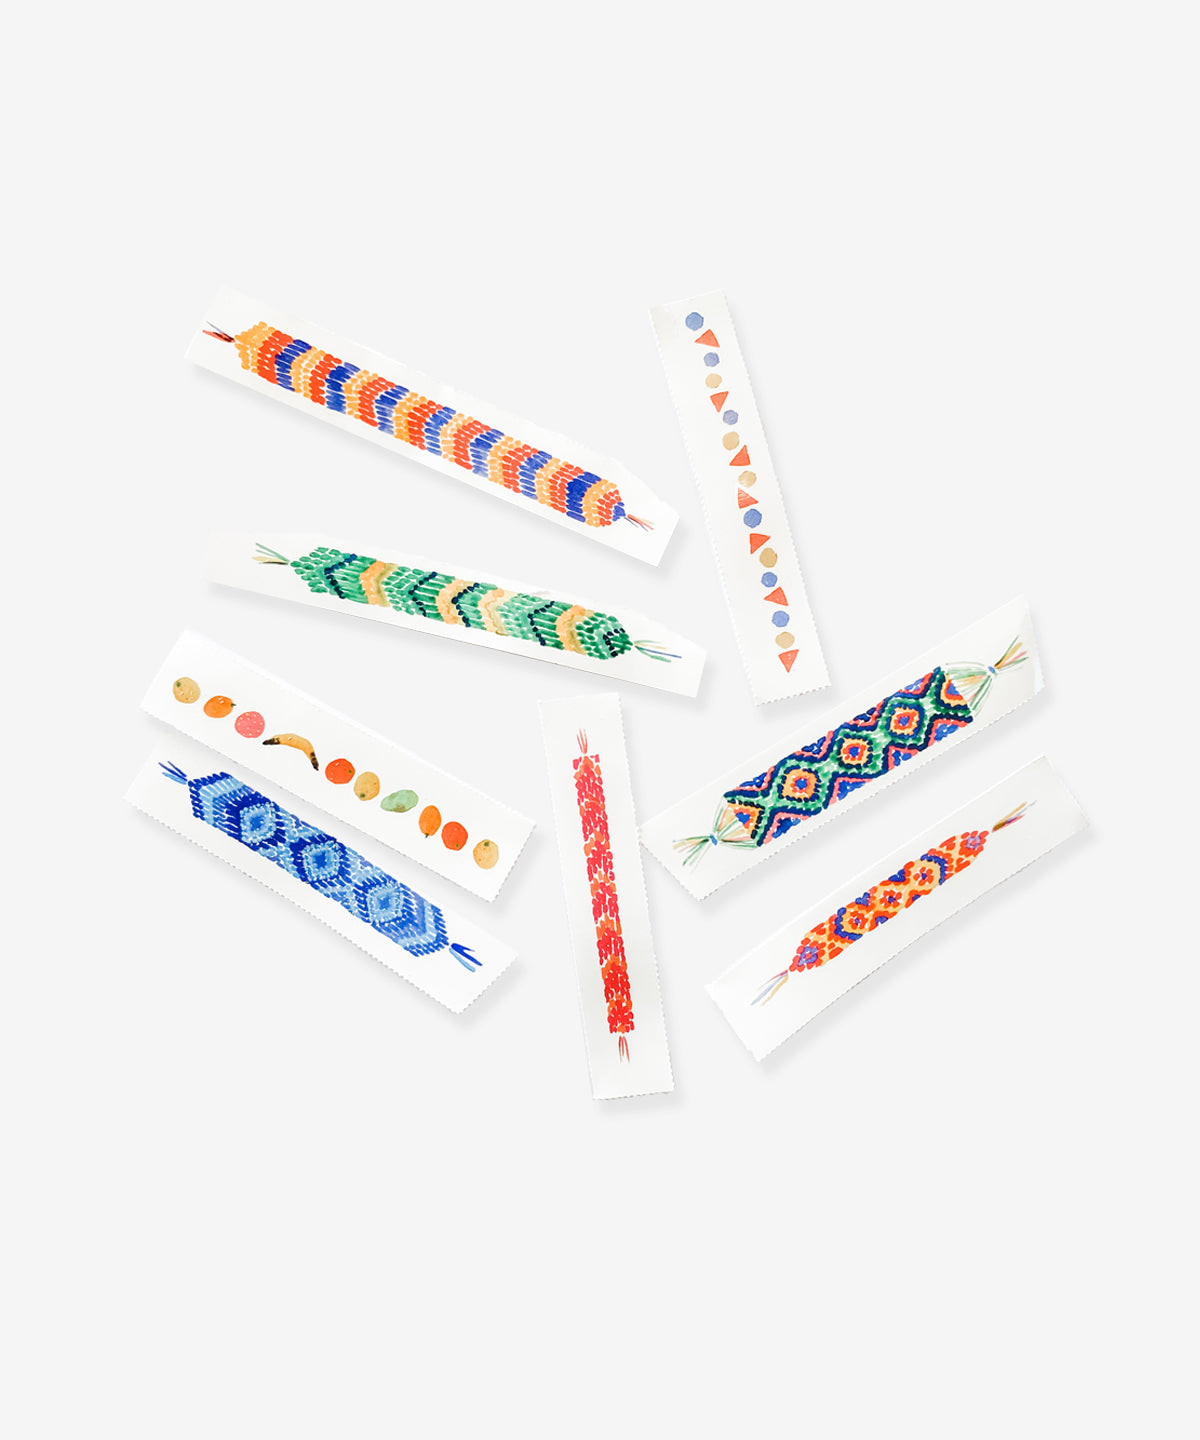 Temporary Tattoo Set, Friendship Bracelets